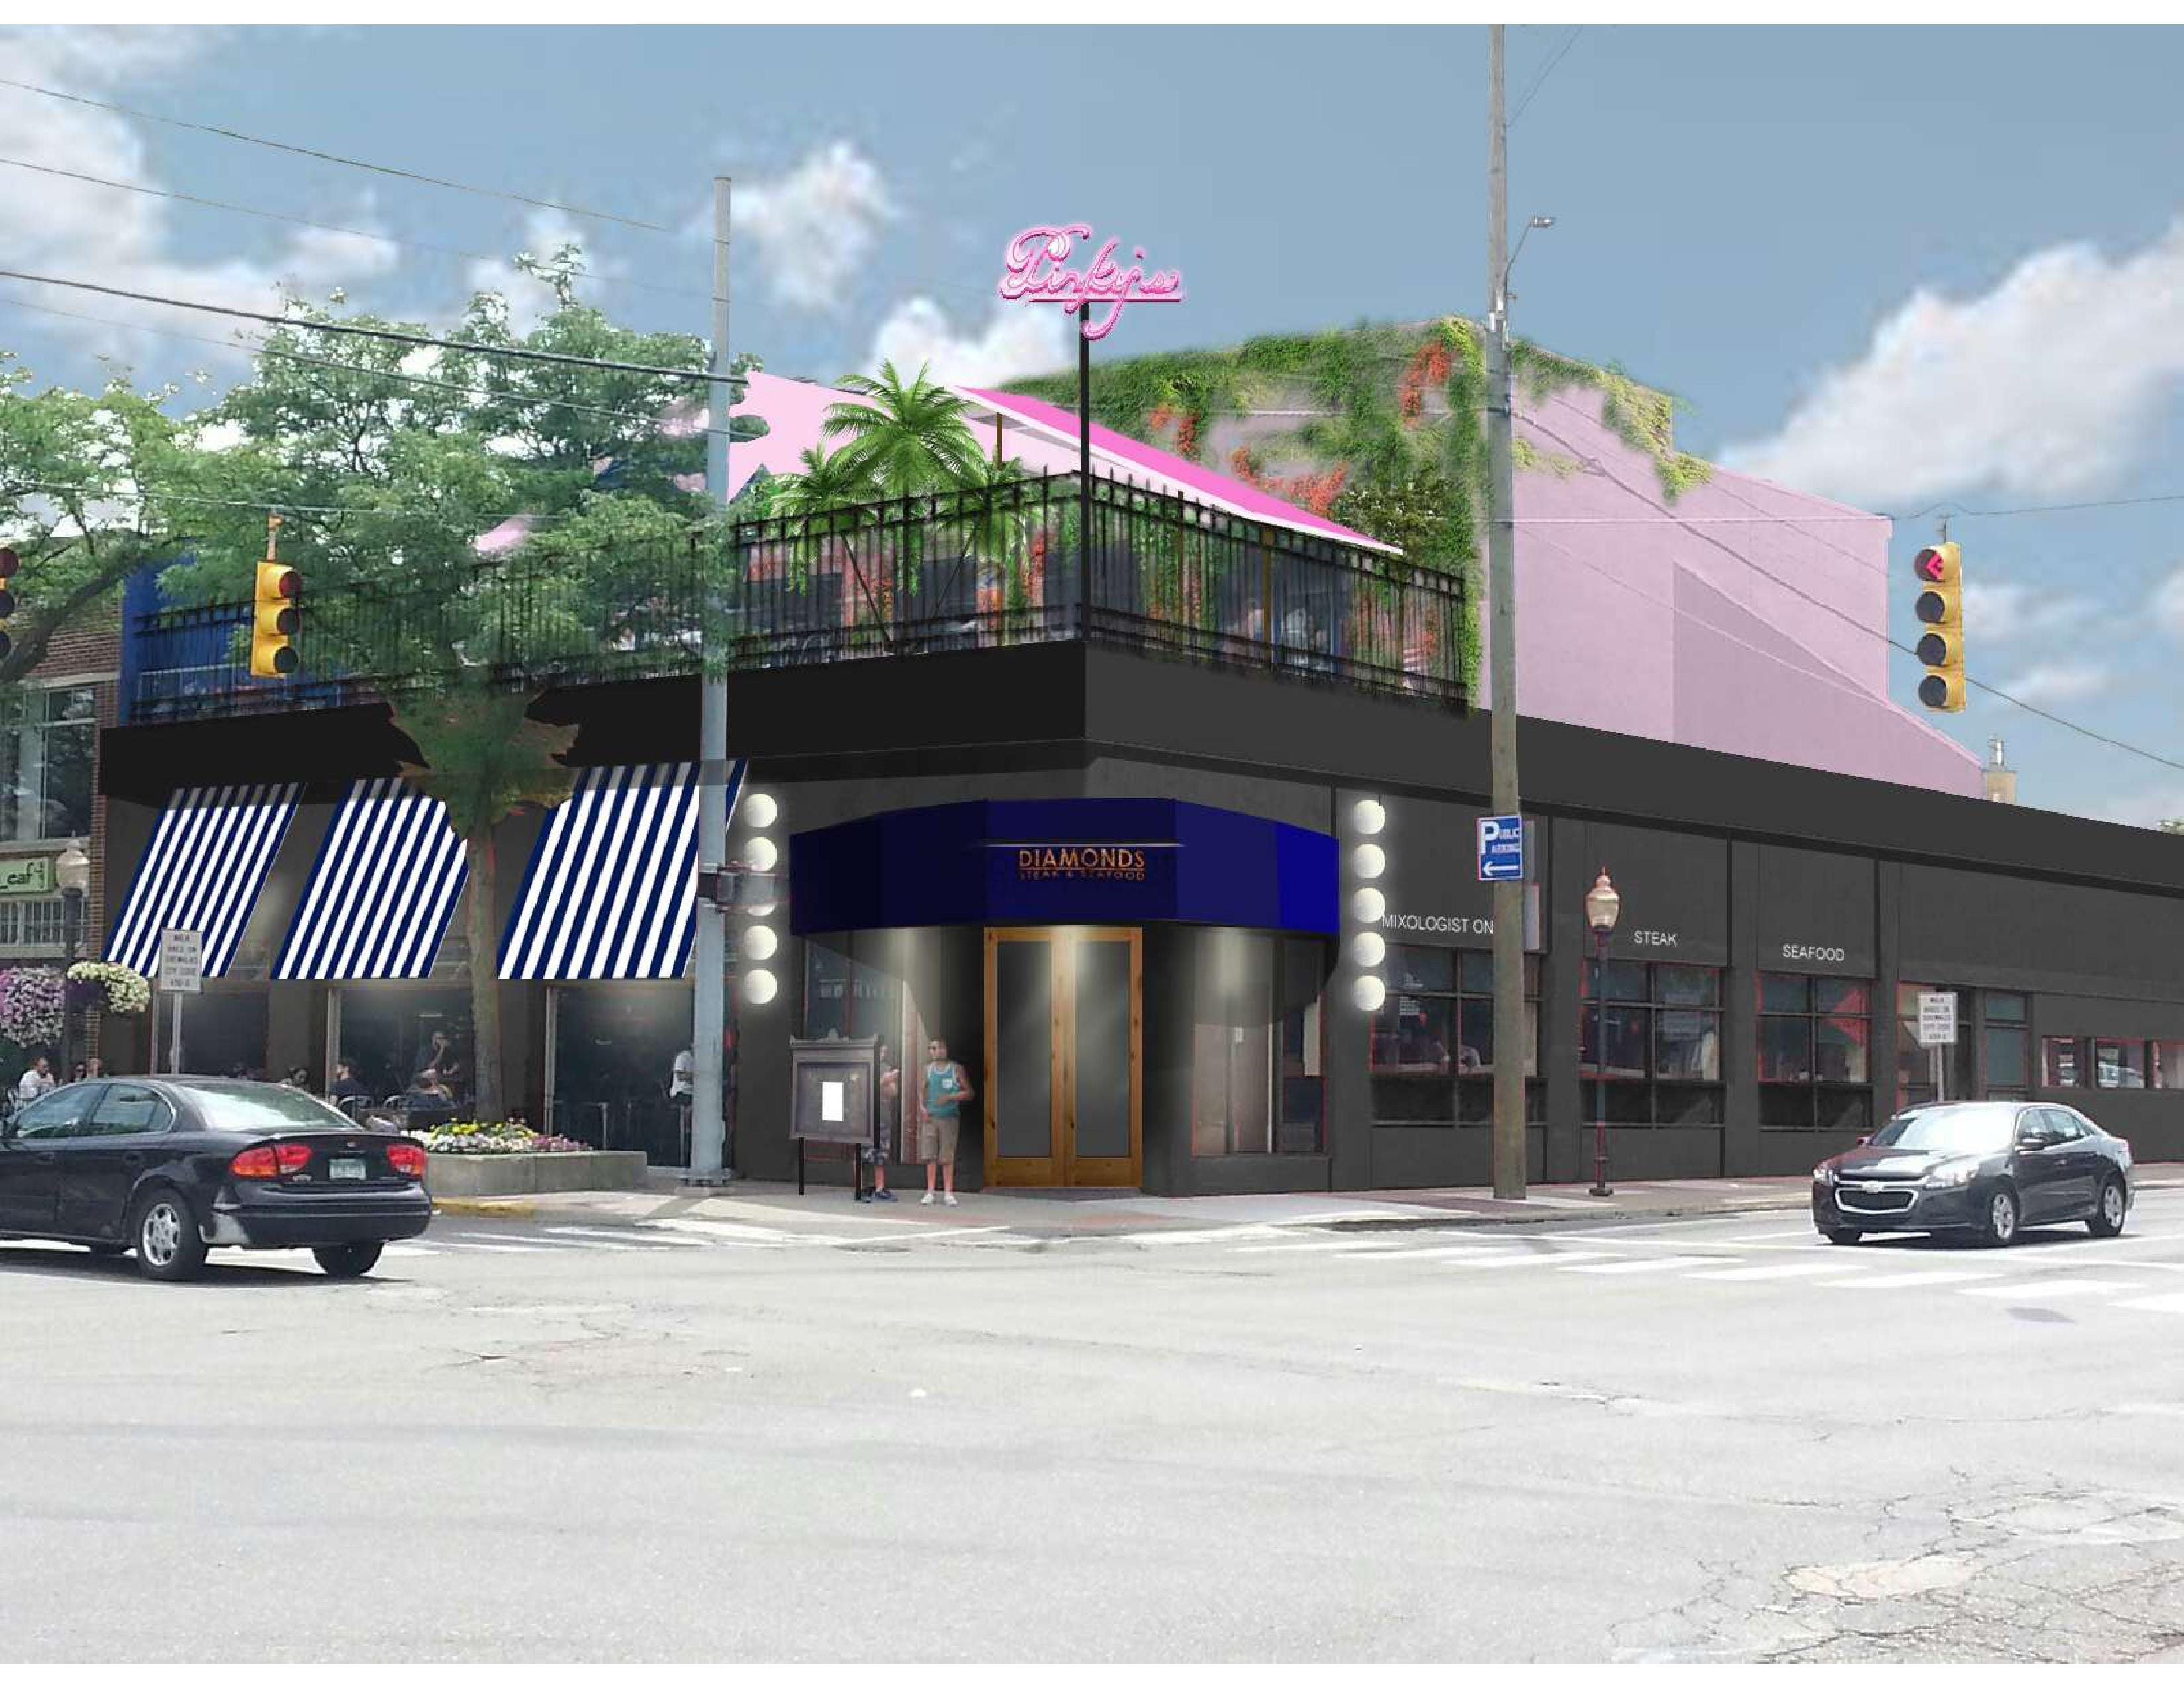 A rendering of Diamonds Steak & Seafood, which is now open in Royal Oak. Pinky's roof top restaurant will follow.